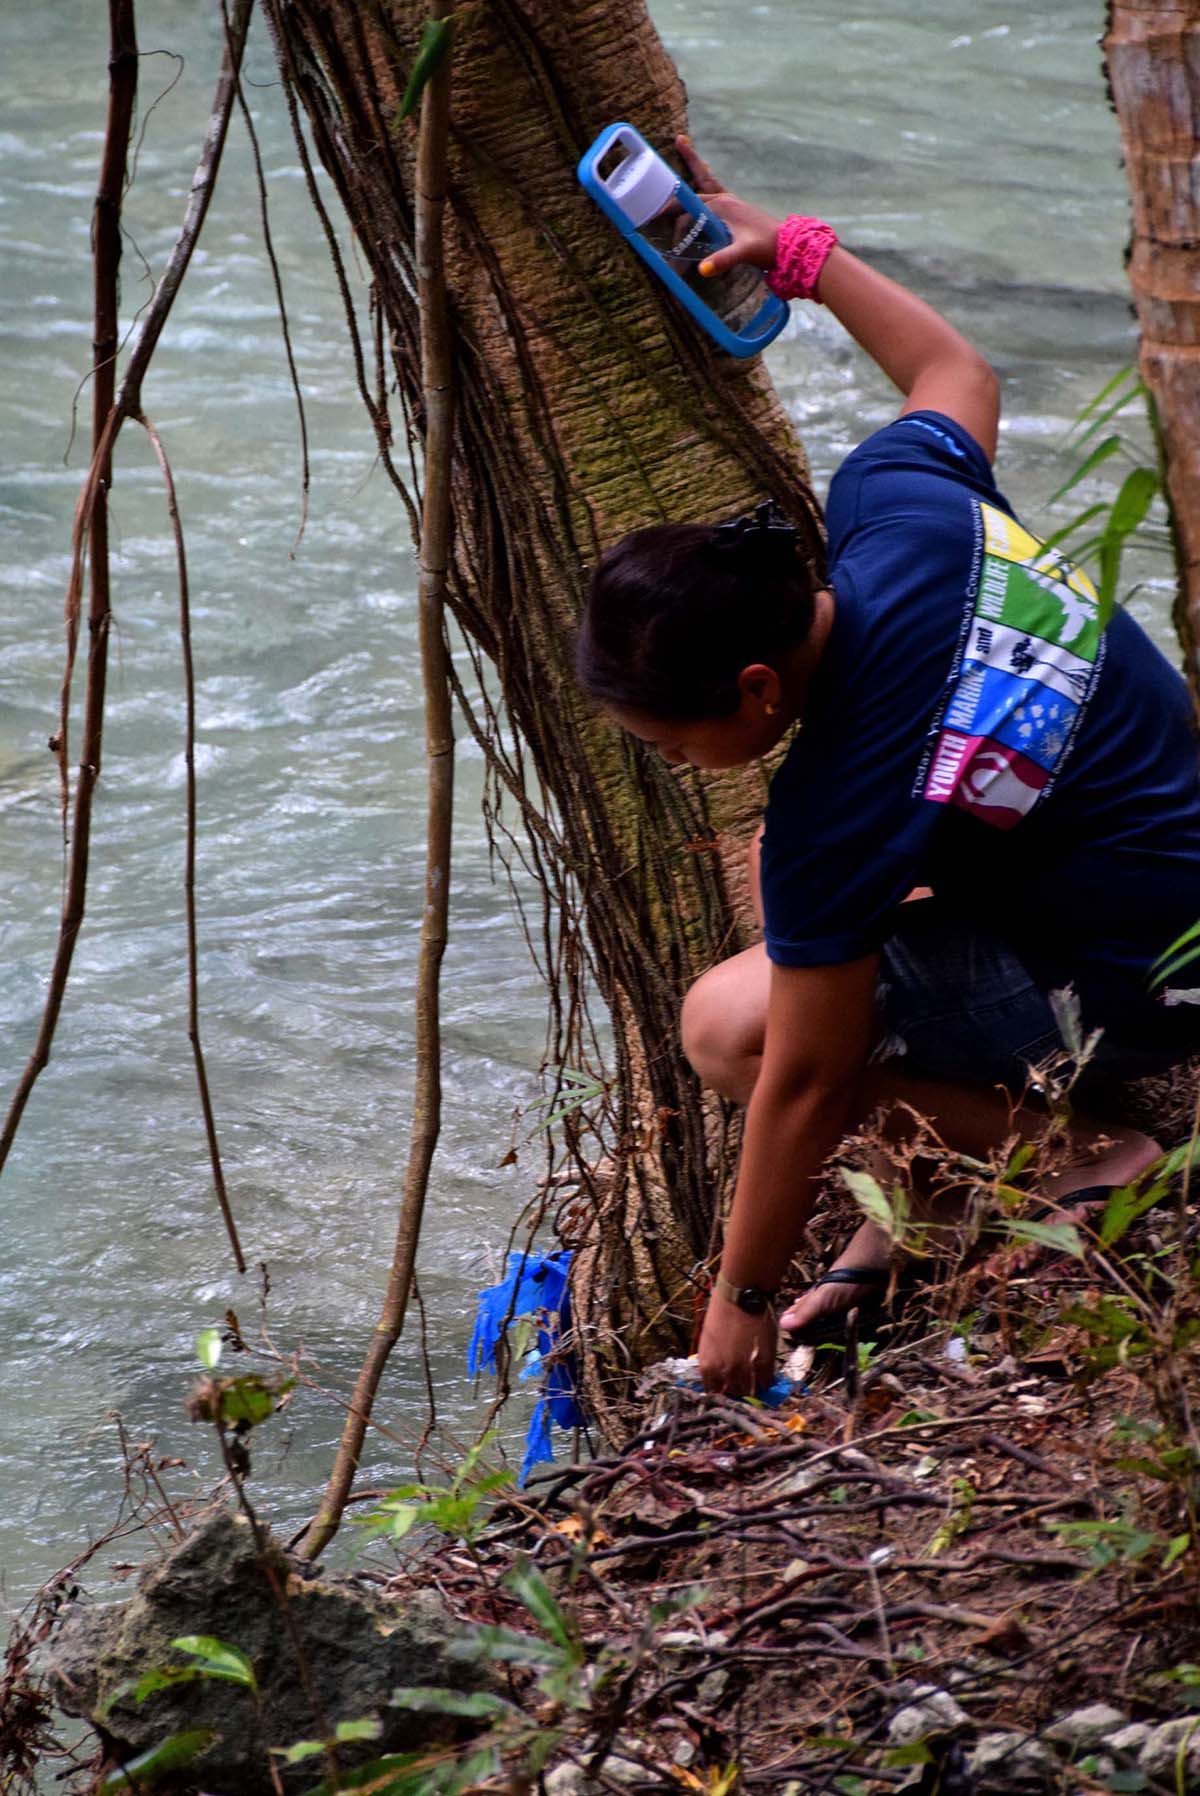 Cleaning the Matutinao River side before approaching Kawasan Falls in Badian, Cebu. (Photo by Noel Galang)